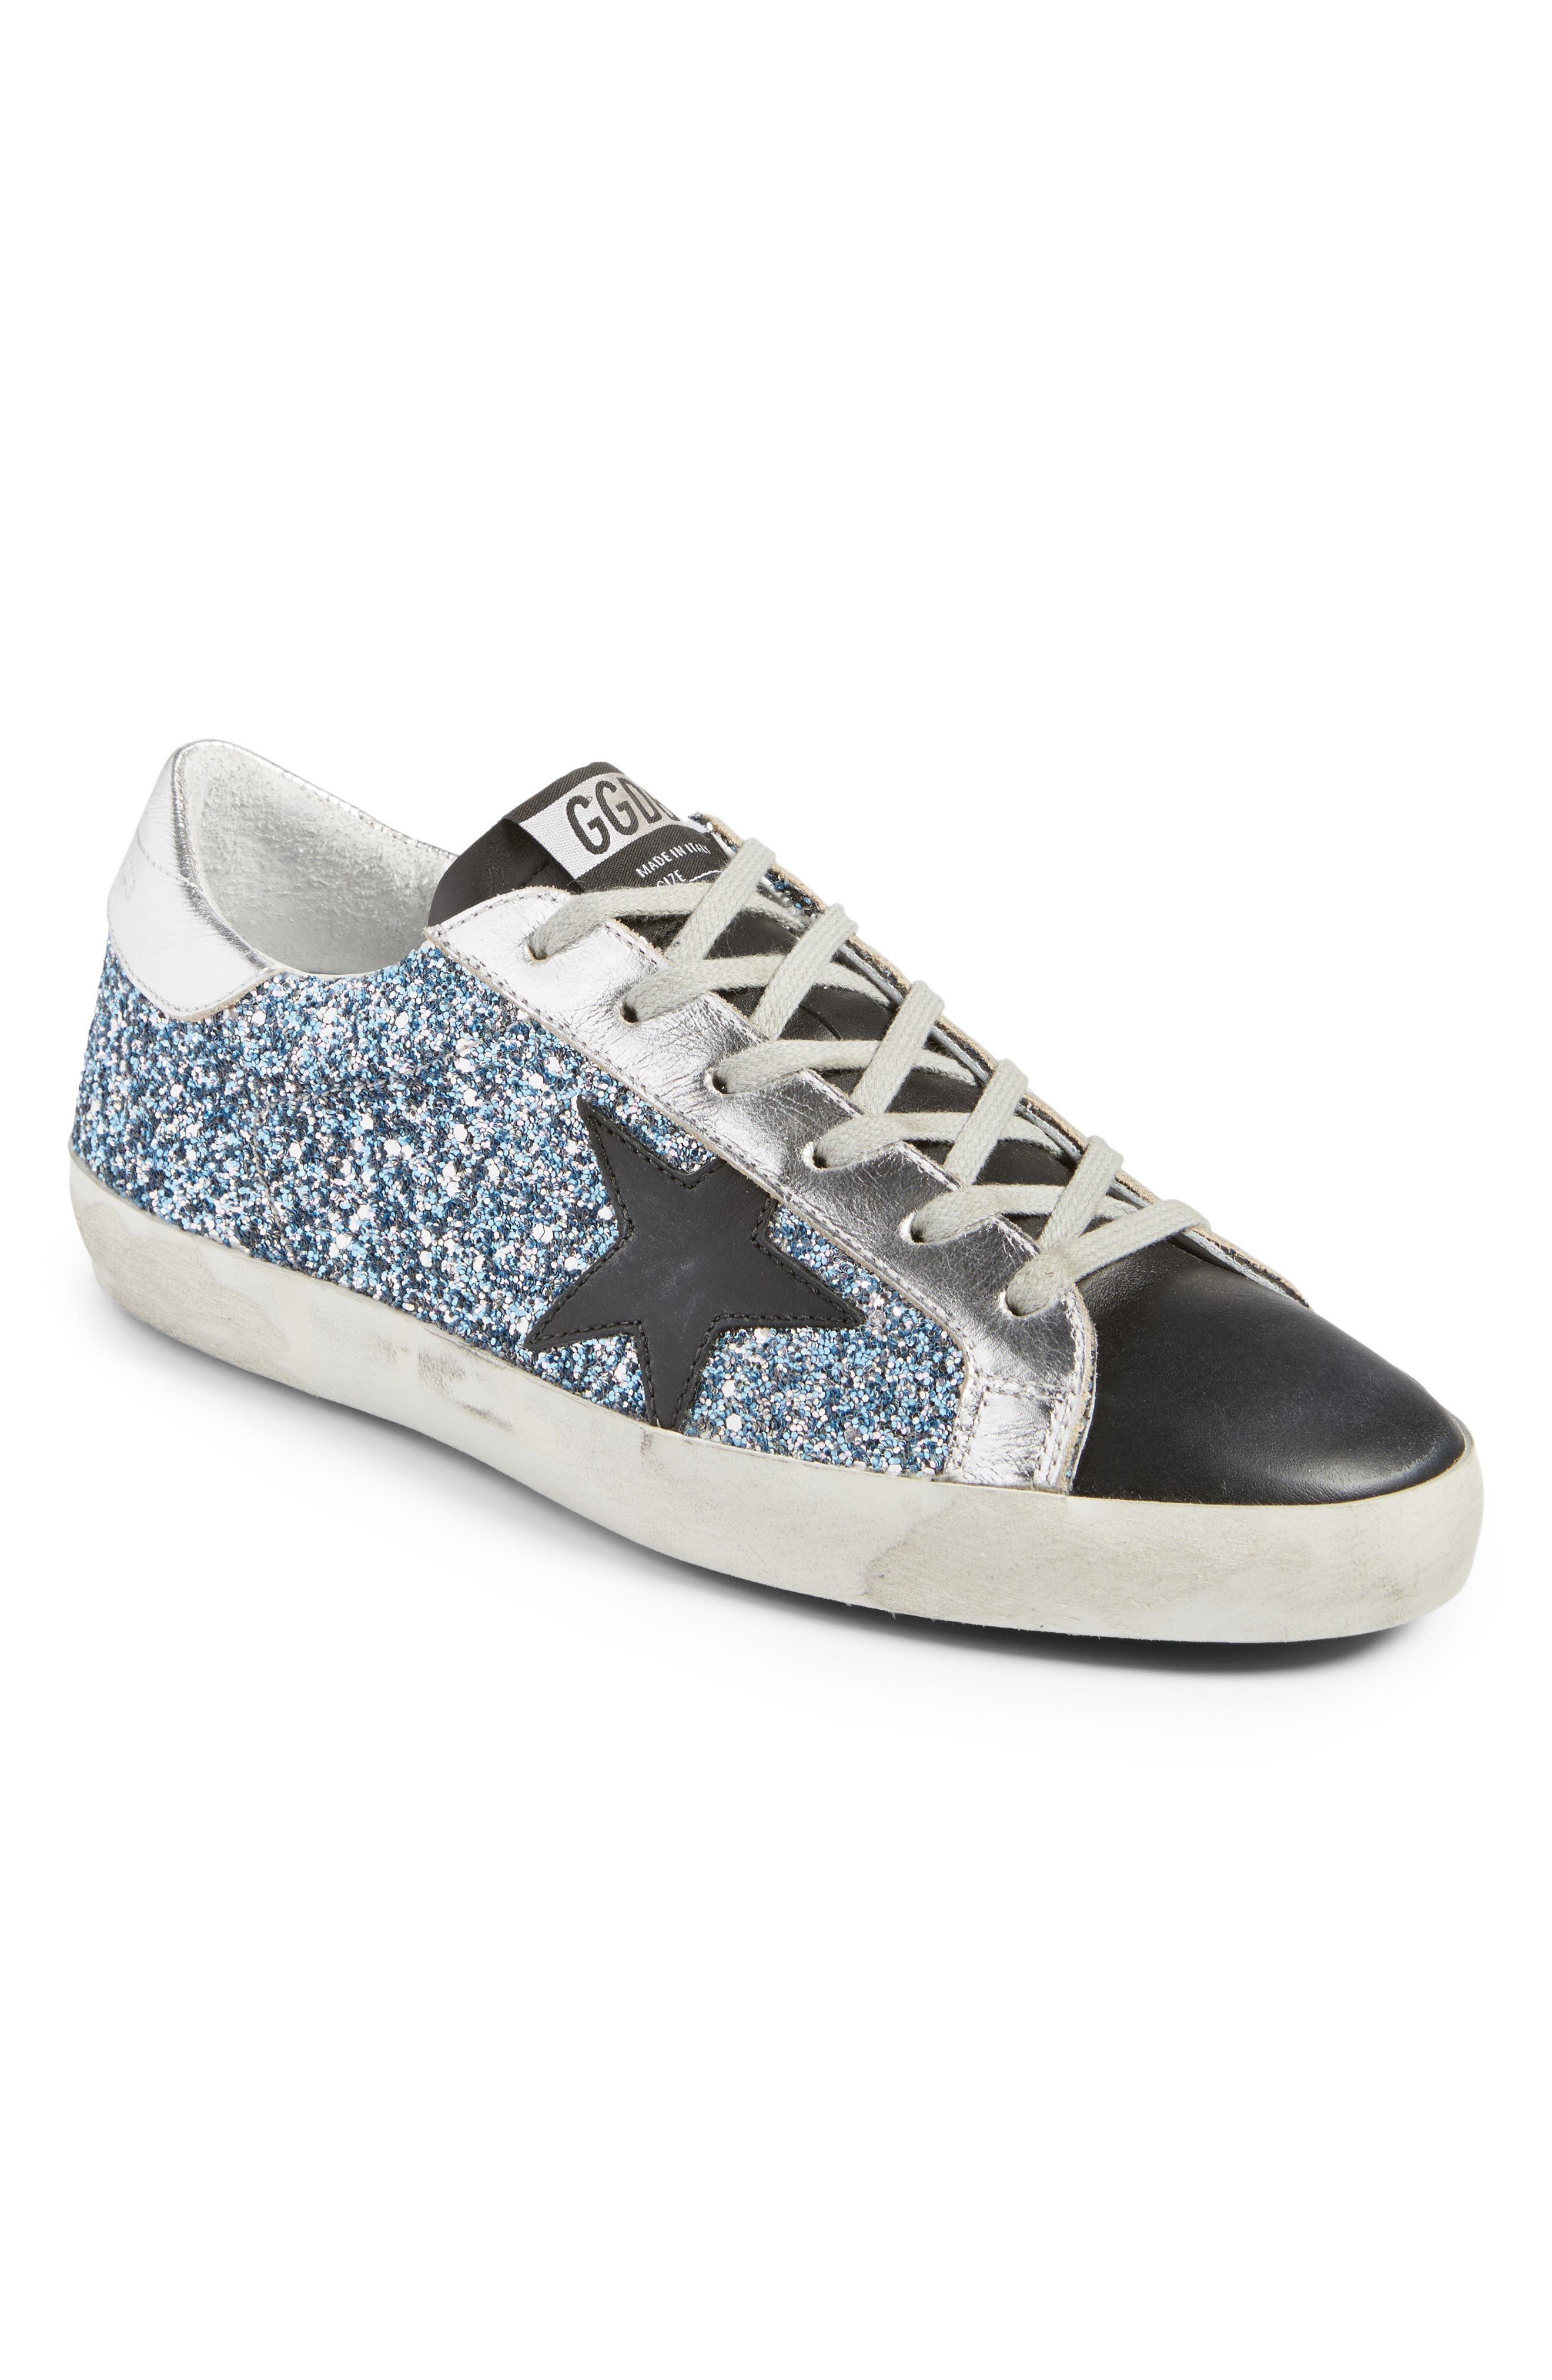 Superstar Glitter Sneaker,                             Main thumbnail 1, color,                             Blue Glitter